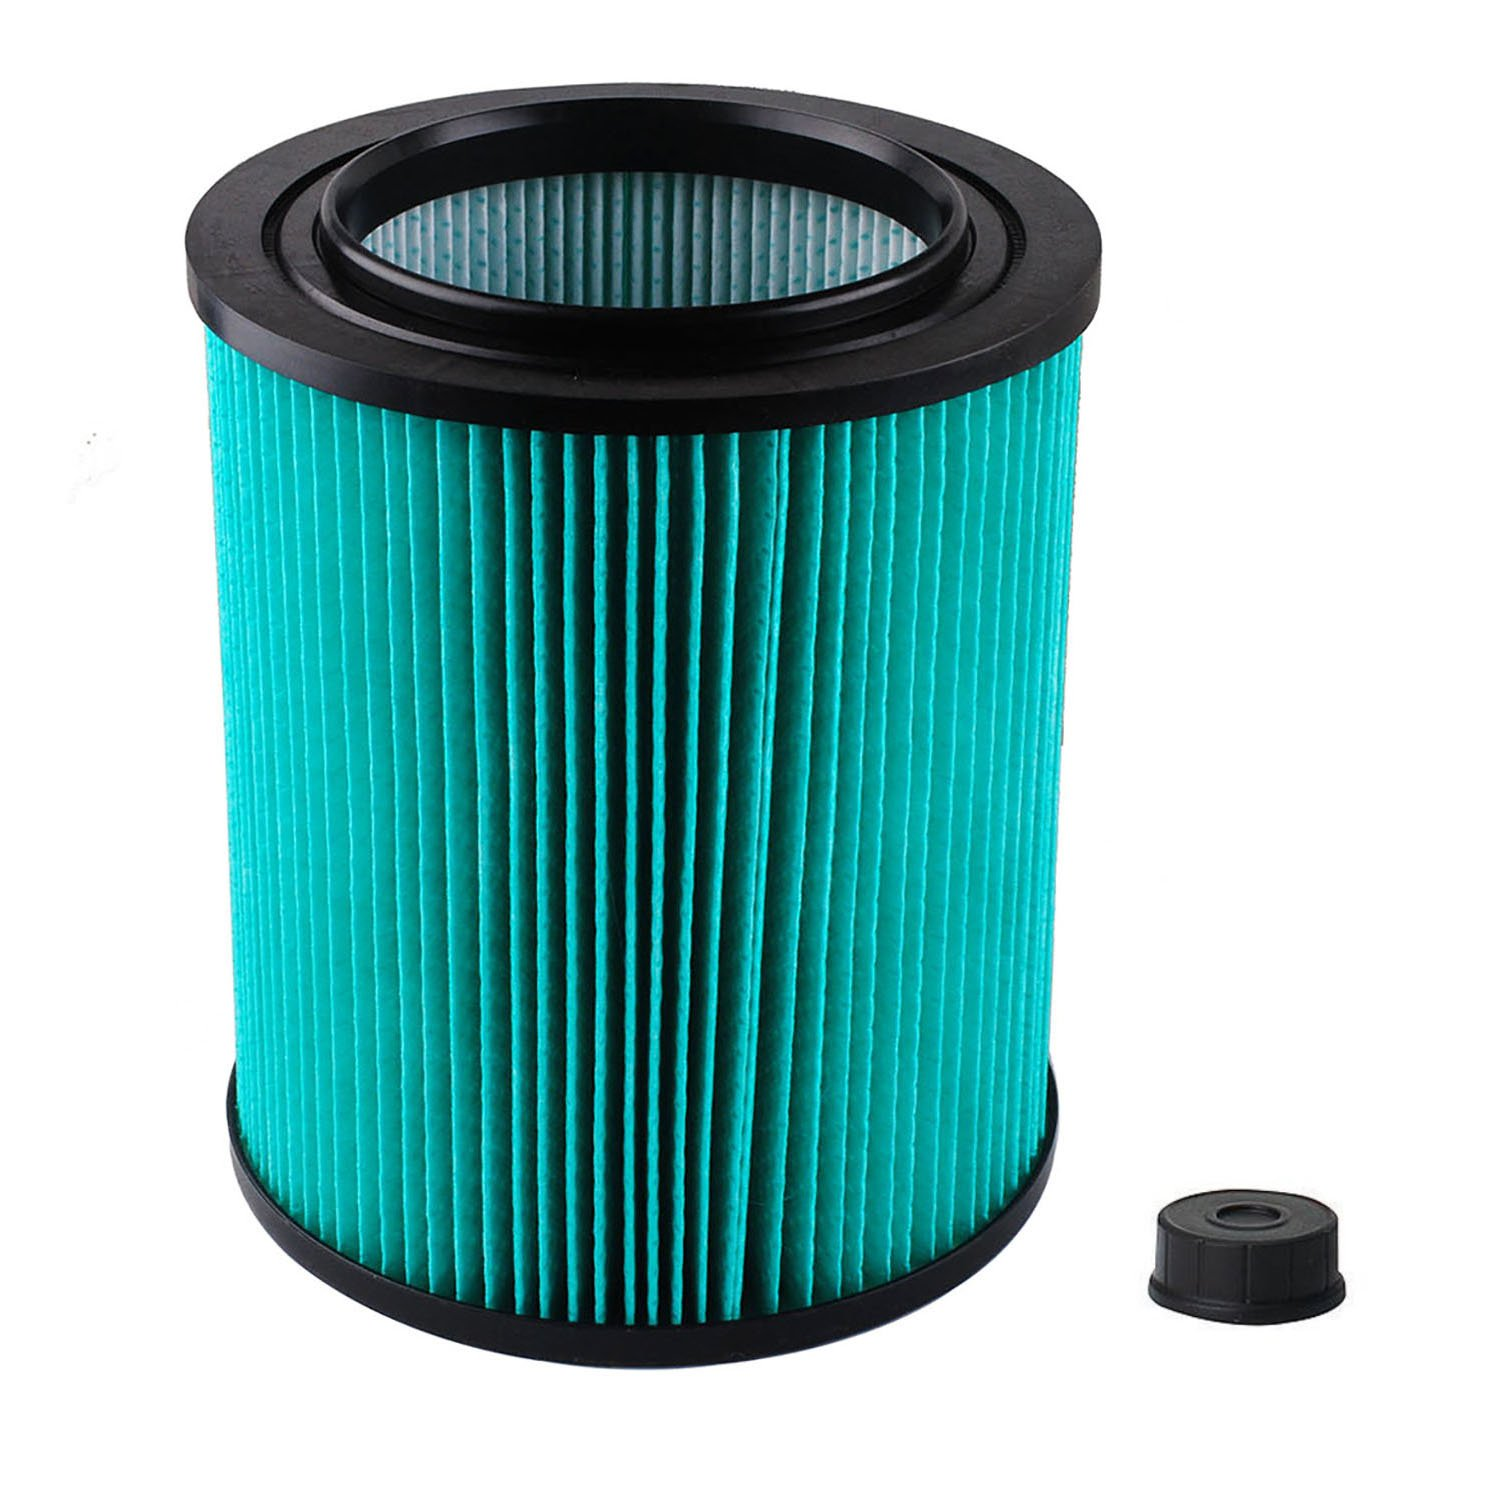 Podoy 9-17912 Wet Dry Vacuum Filter Shop Vac Air Filter Replacement Compatible with Craftsman with High Efficiency